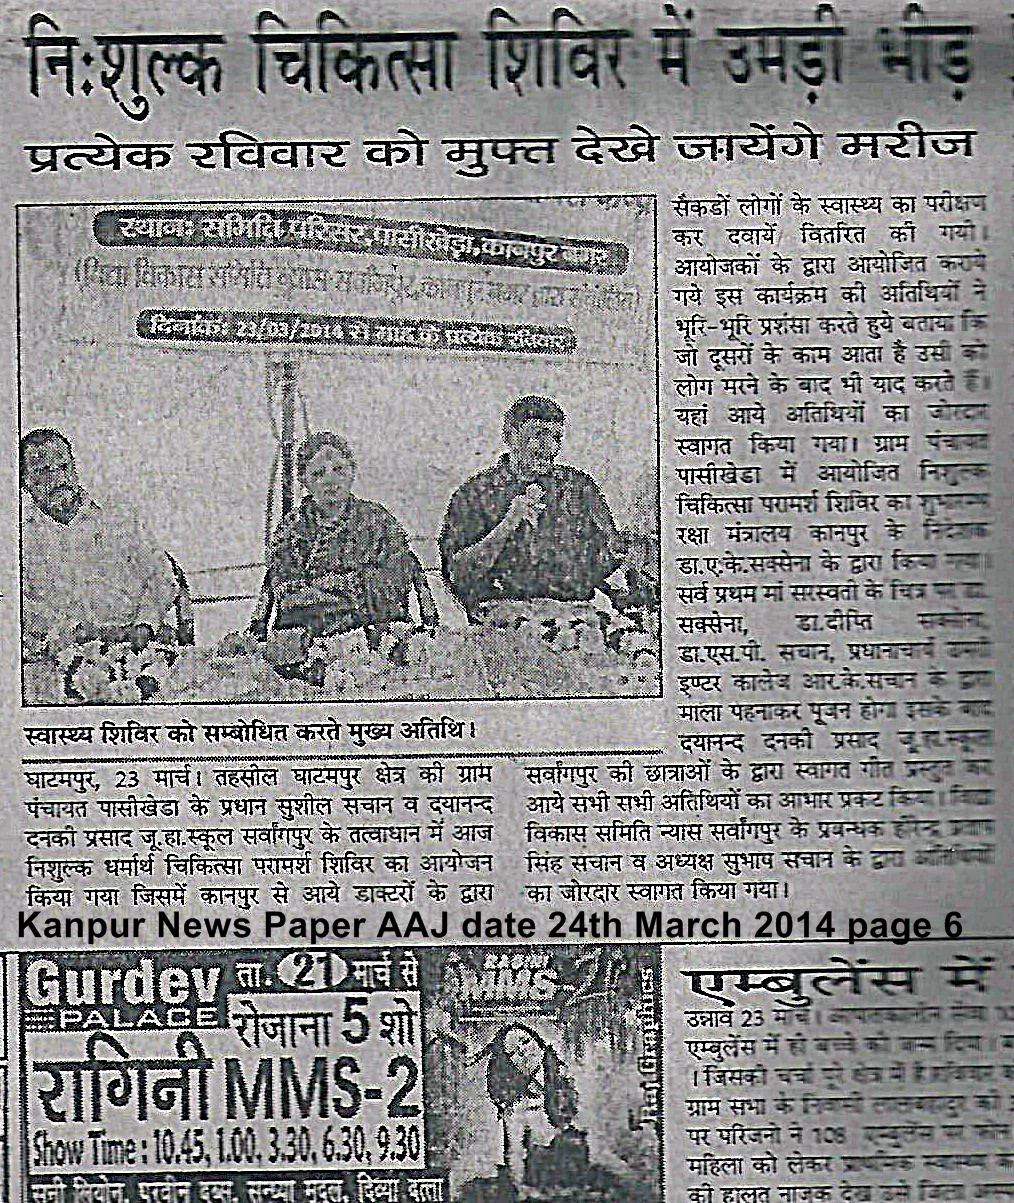 Kanpur News Paper Aaj 24th March 2104